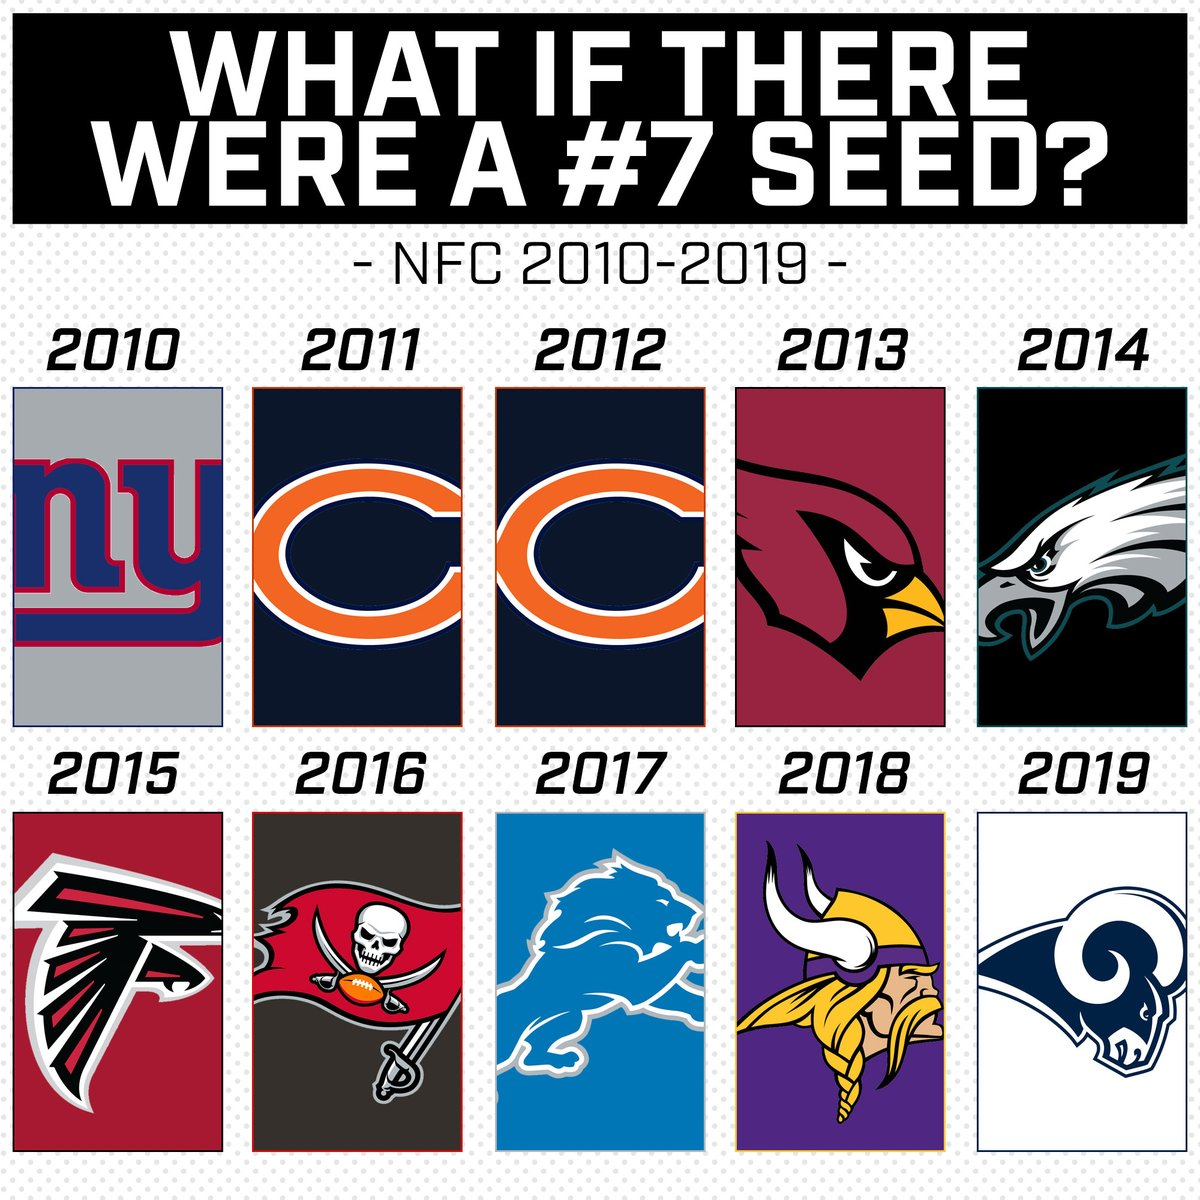 Bears could have made the playoffs in 2011 and 2012 with No. 7 seed